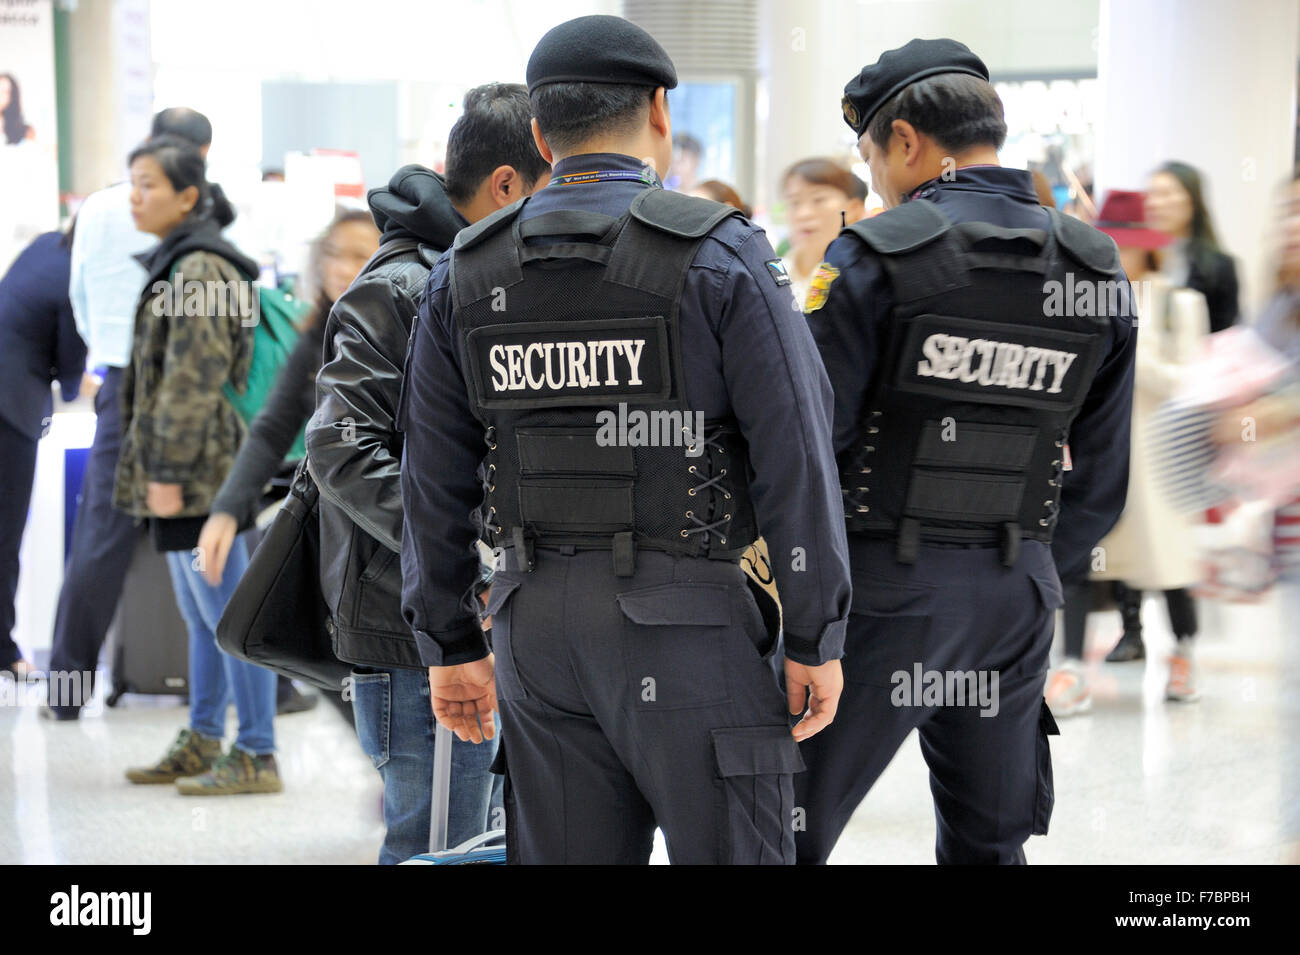 Seoul, South Korea-November 16, 2015: Airport security, police at Seoul Incheon International Airport.Taken with - Stock Image